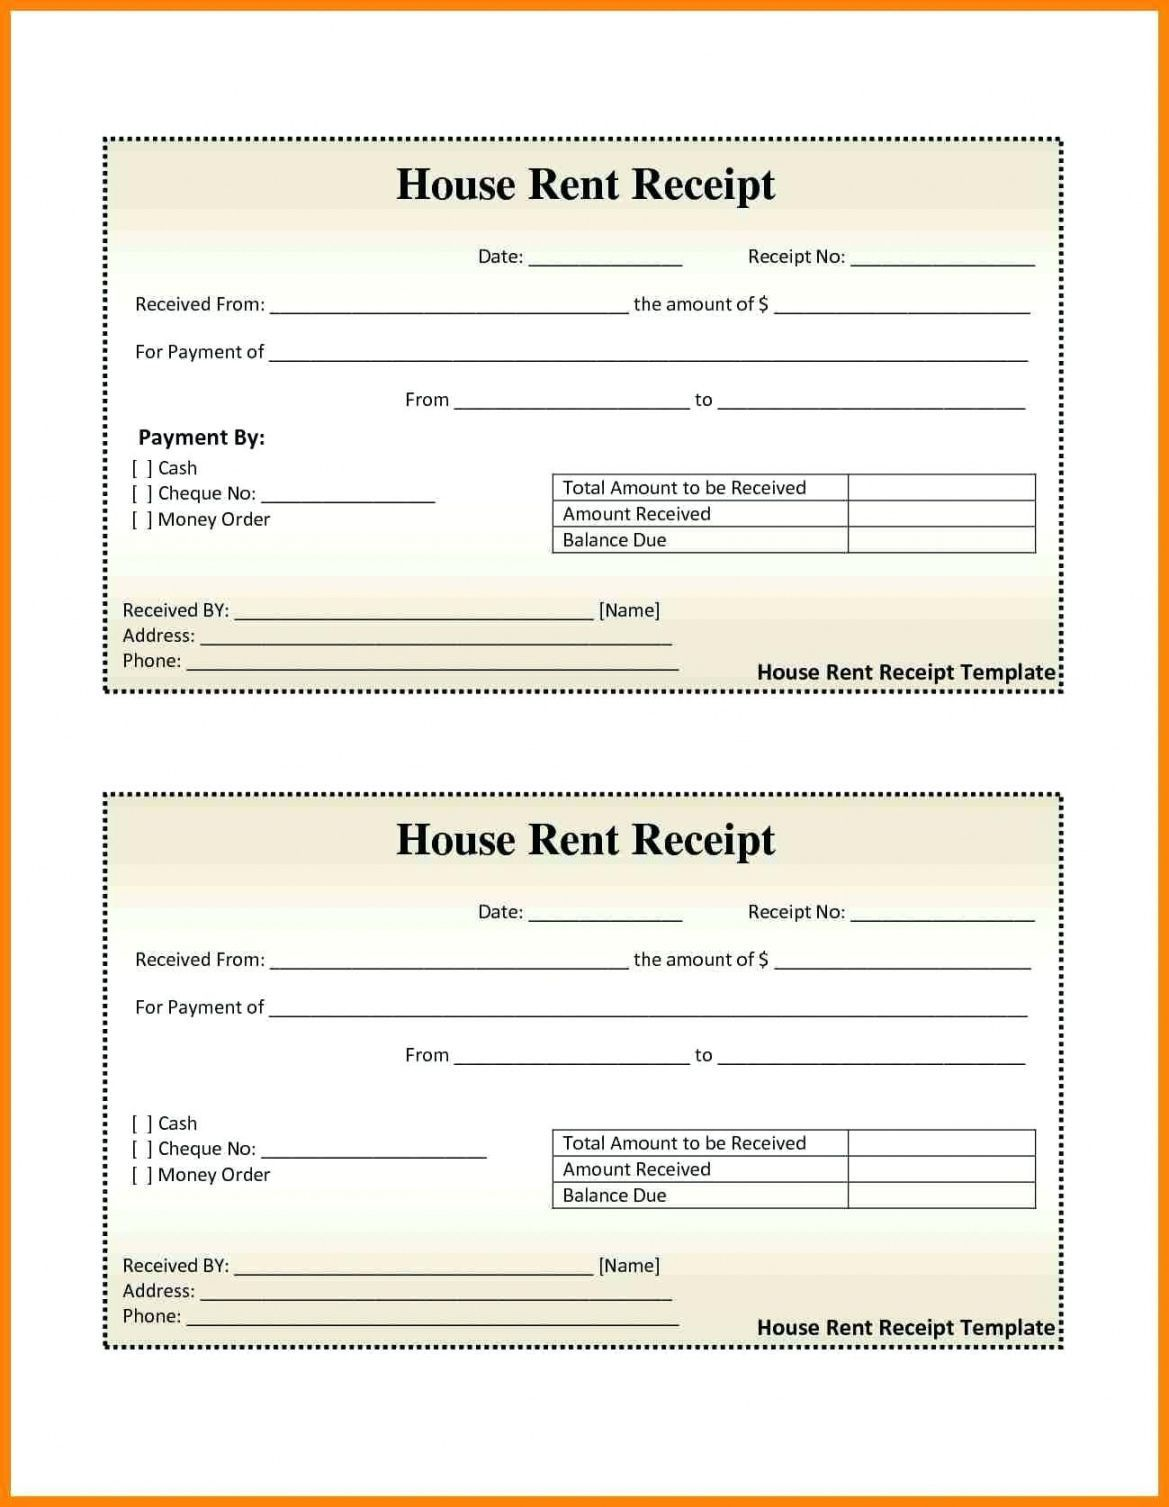 001 Remarkable House Rent Receipt Template India Doc Sample  Format DownloadFull